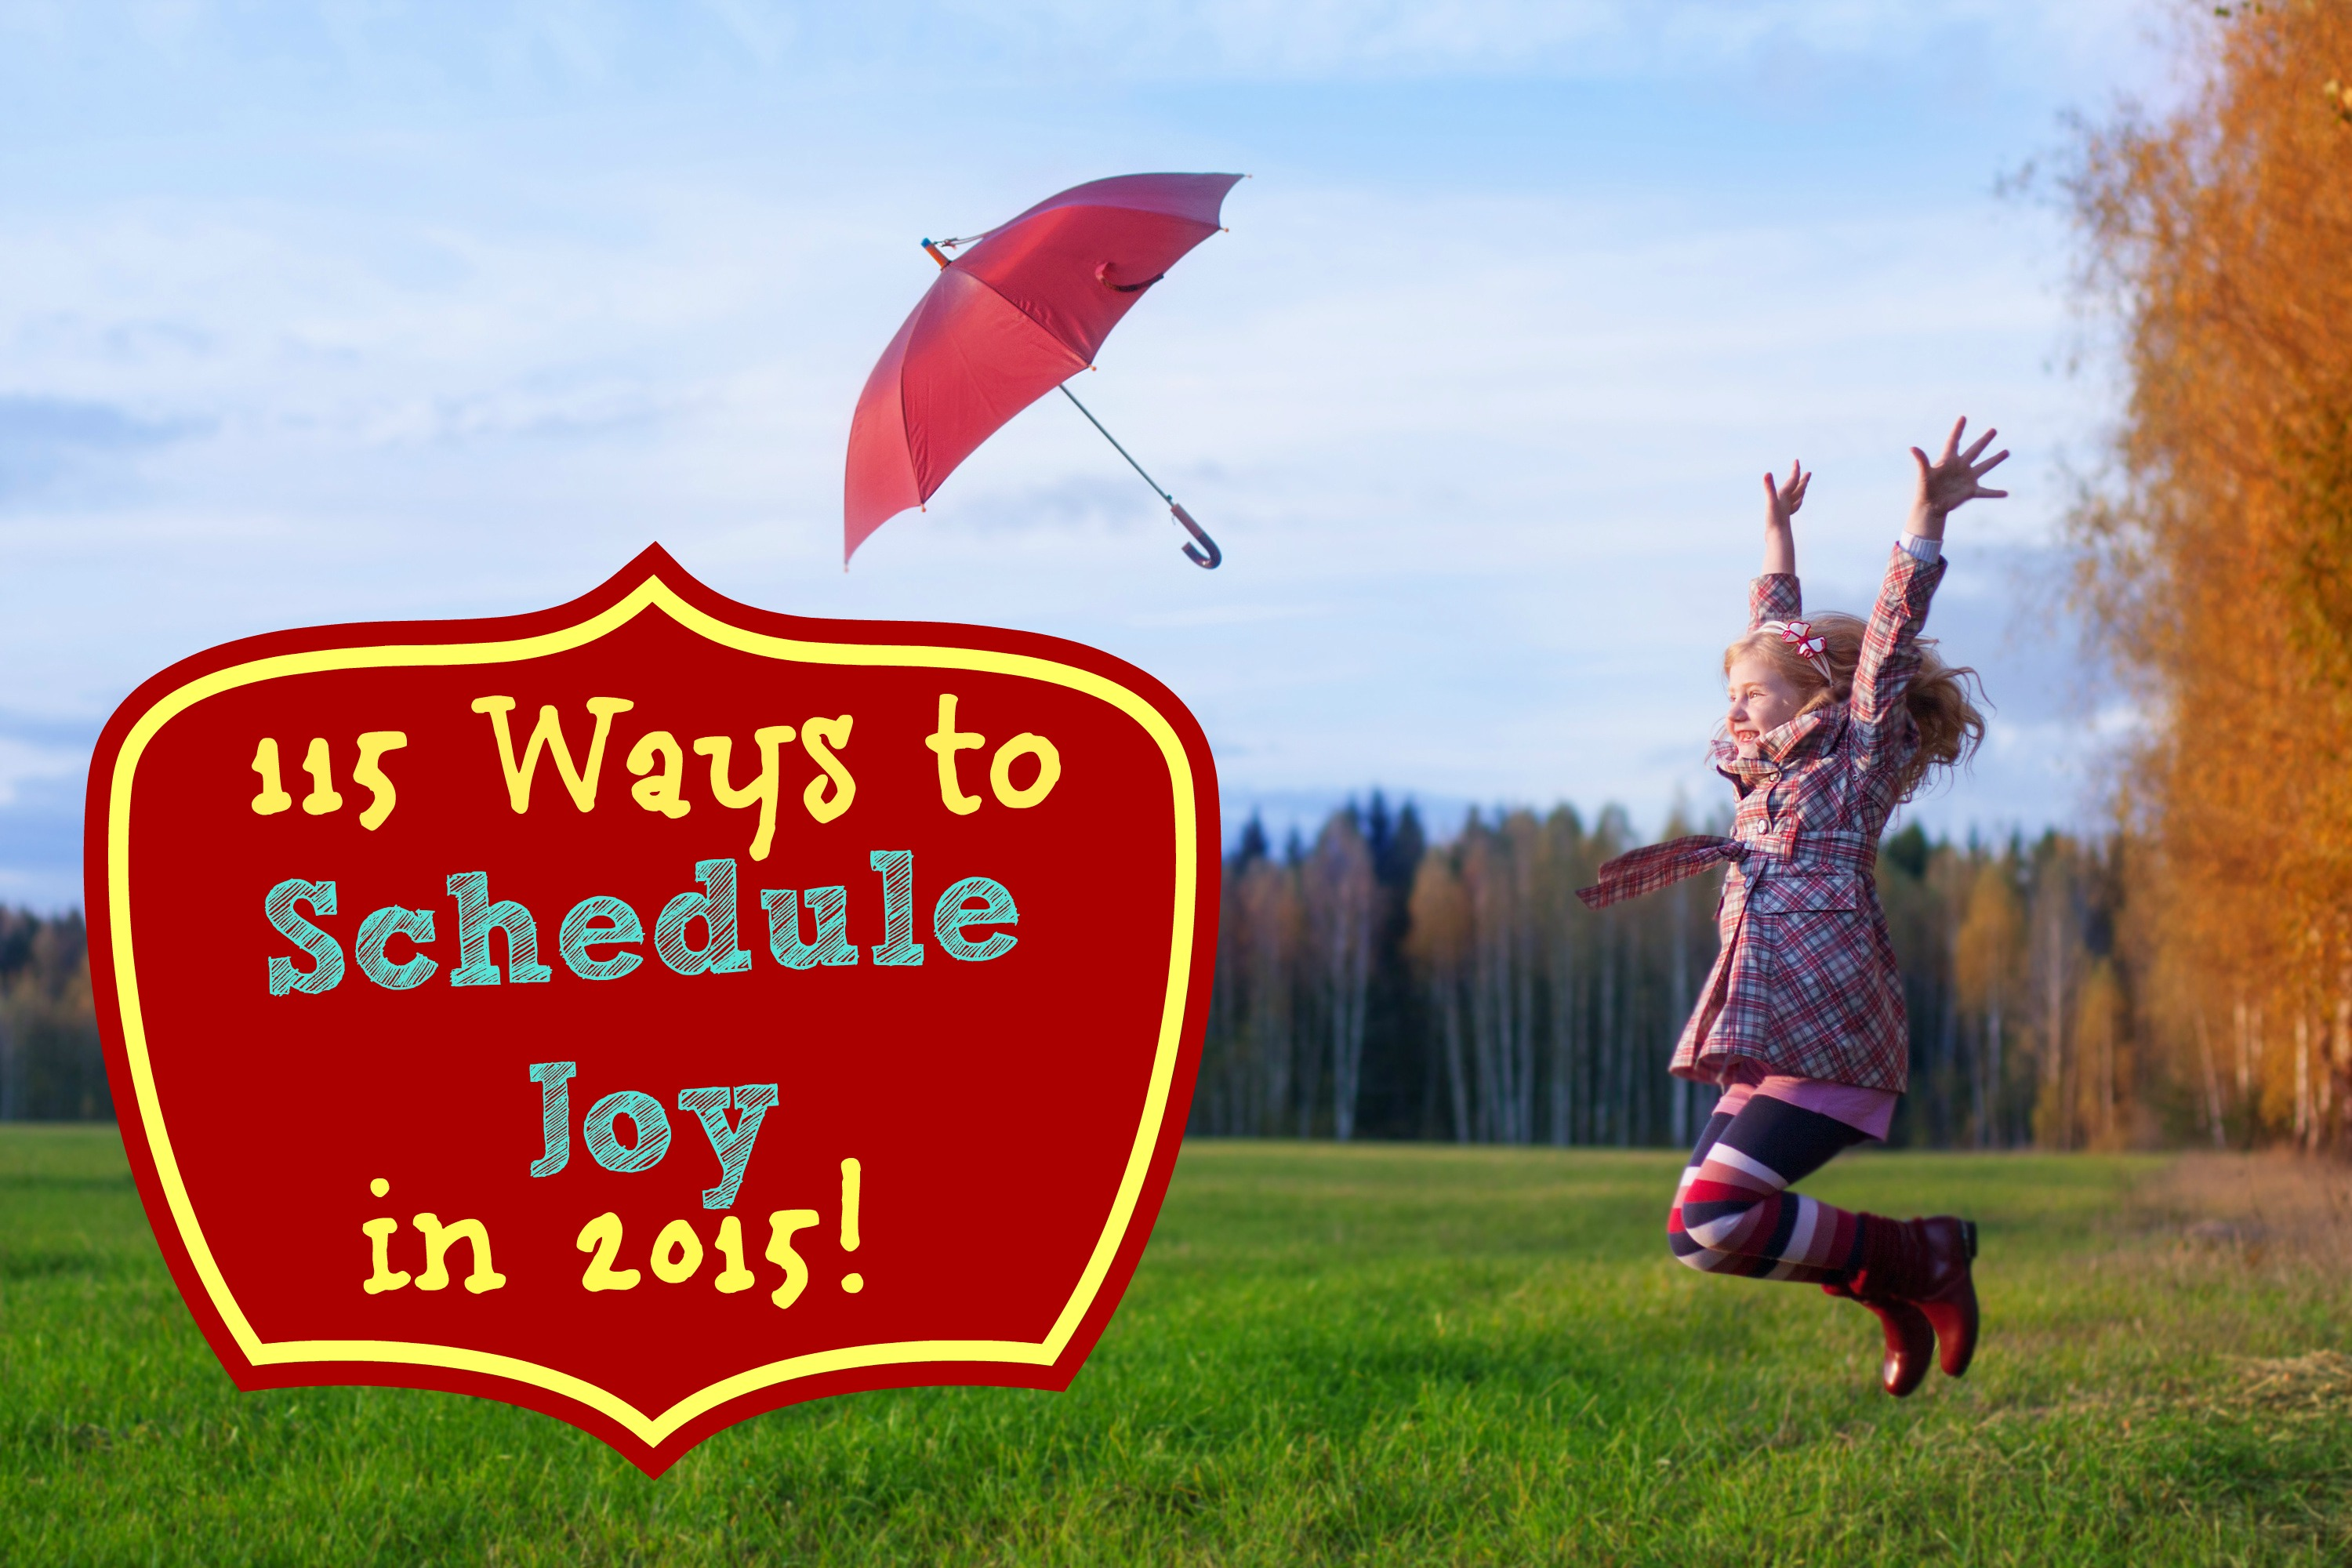 115 Ways to Schedule Joy in 2015!